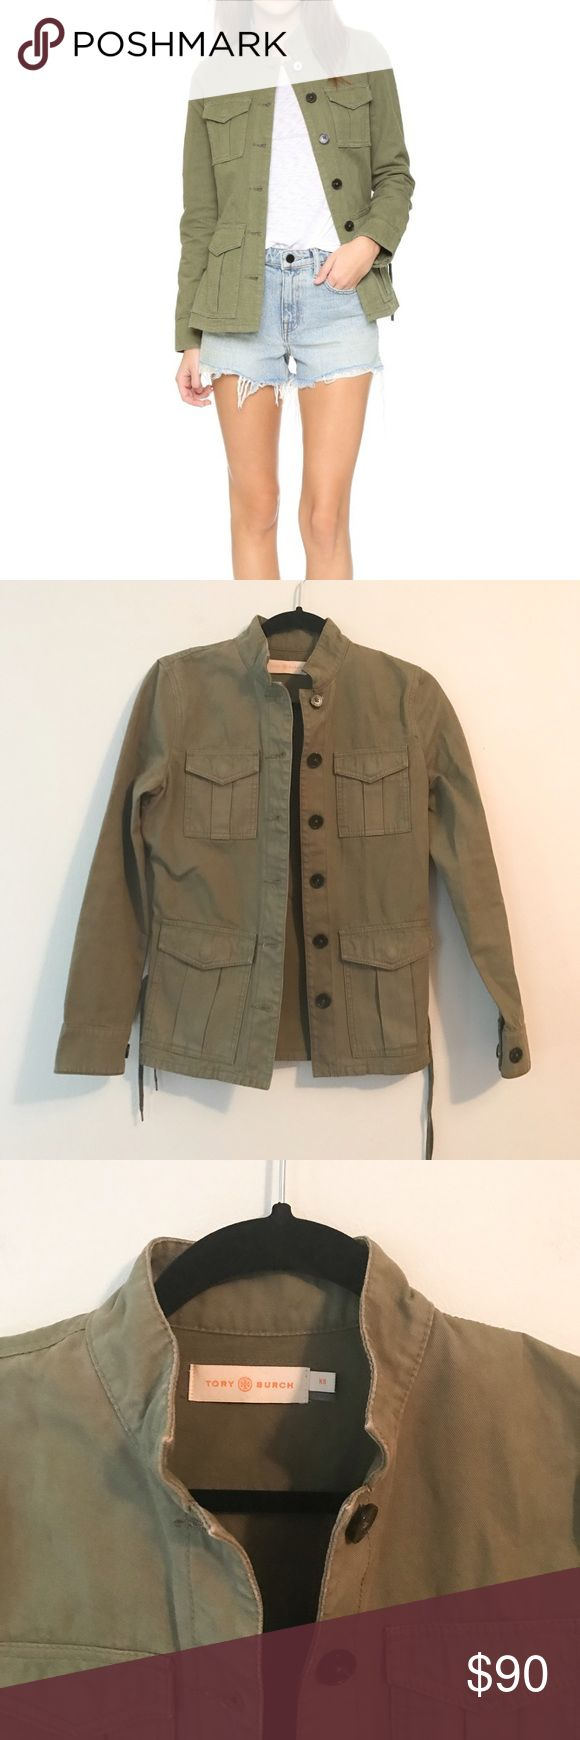 Tory Burch military jacket, size XS Green Military jacket from Tory Burch, size XS. 100% cotton. Lace-up sides for flattering fit. Band collar, button front. One button cuff. Very good used condition Tory Burch Jackets & Coats